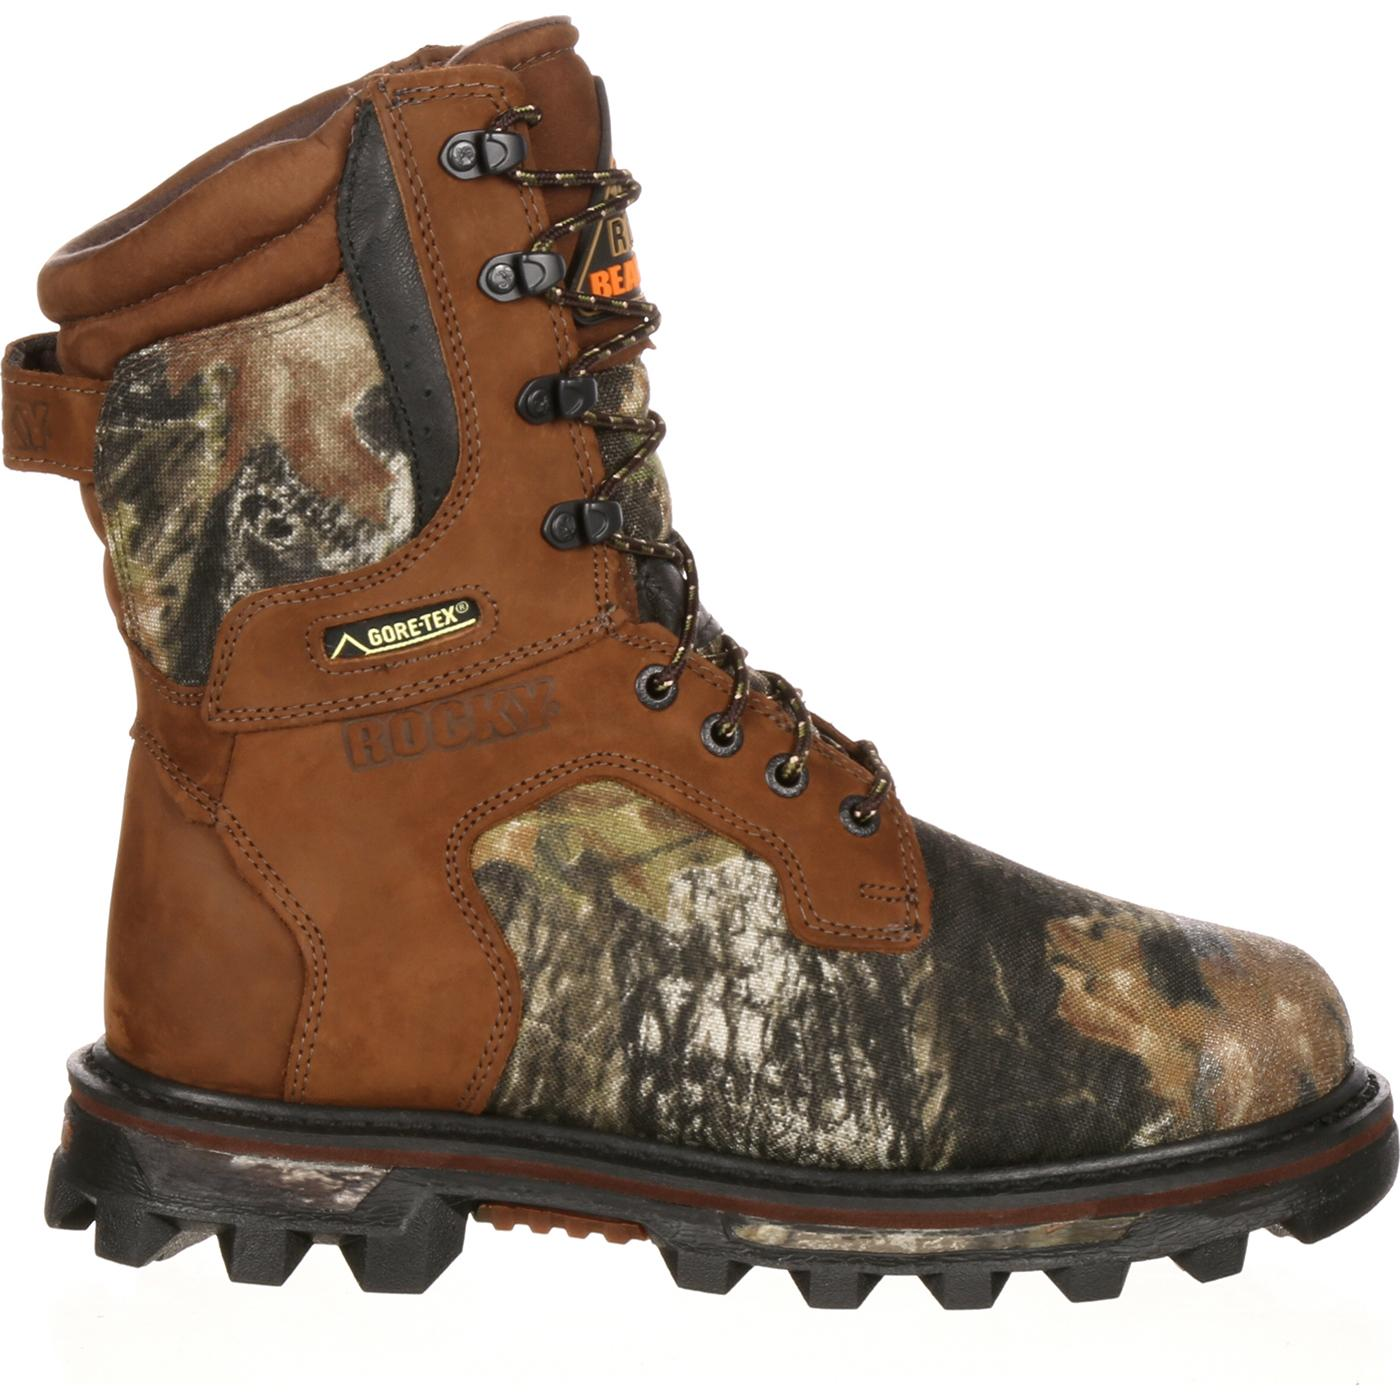 Rocky BearClaw 3D Insulated GORE-TEX Hunting Boot - #9275